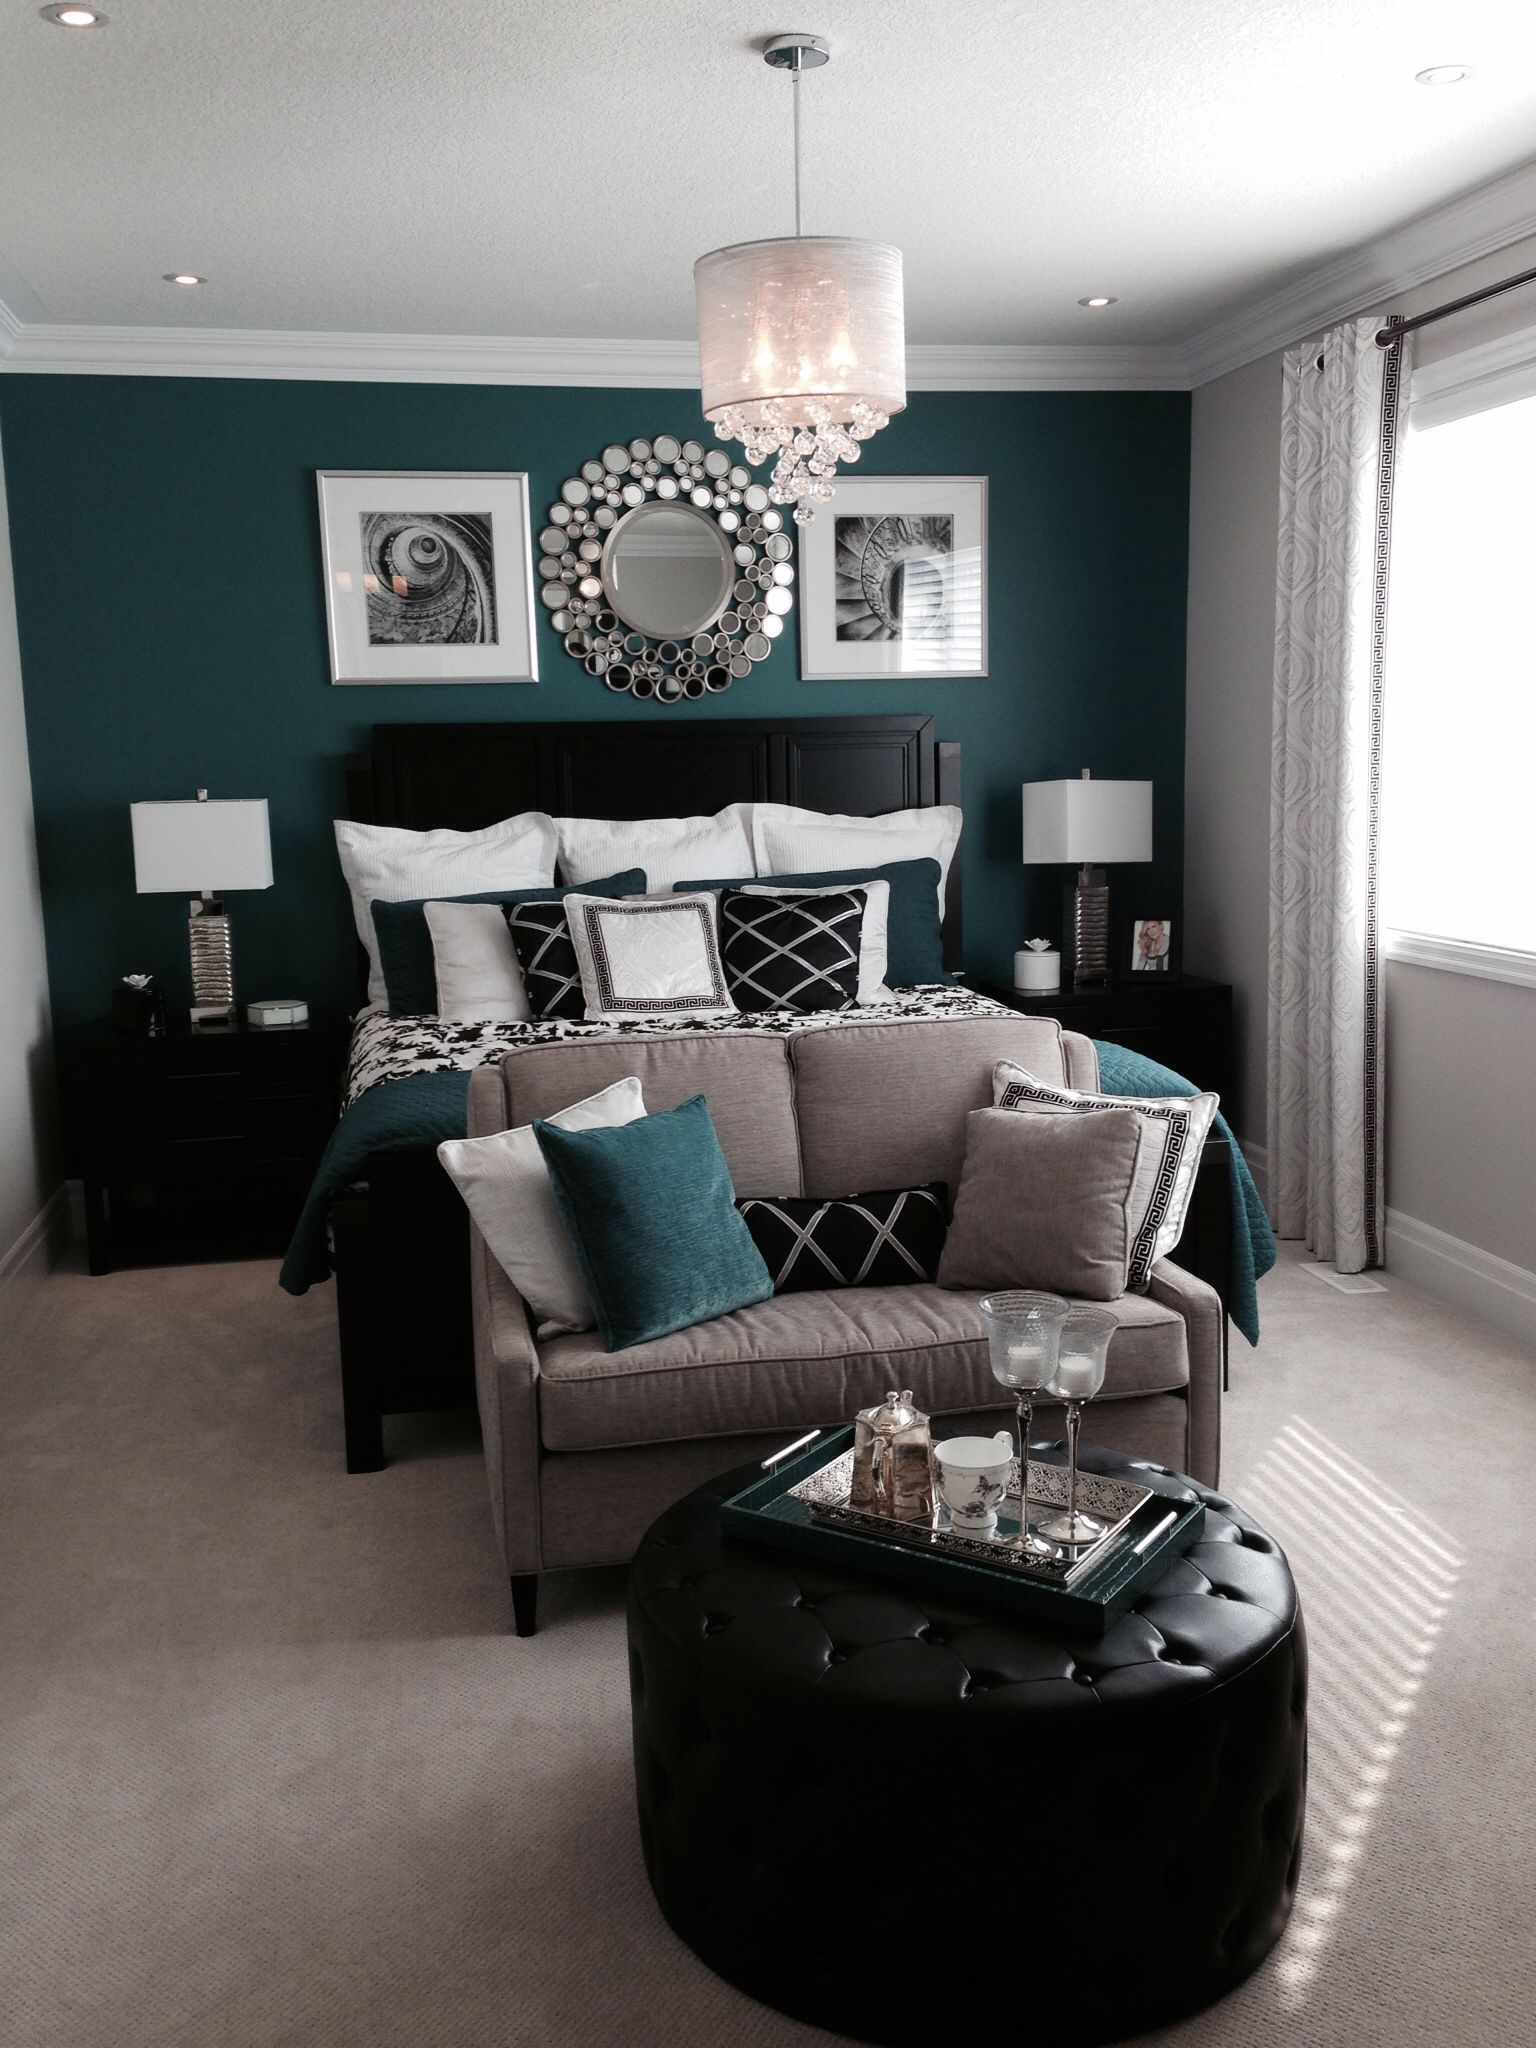 Bedroom Dark Teal Accents Walls Black And Silver